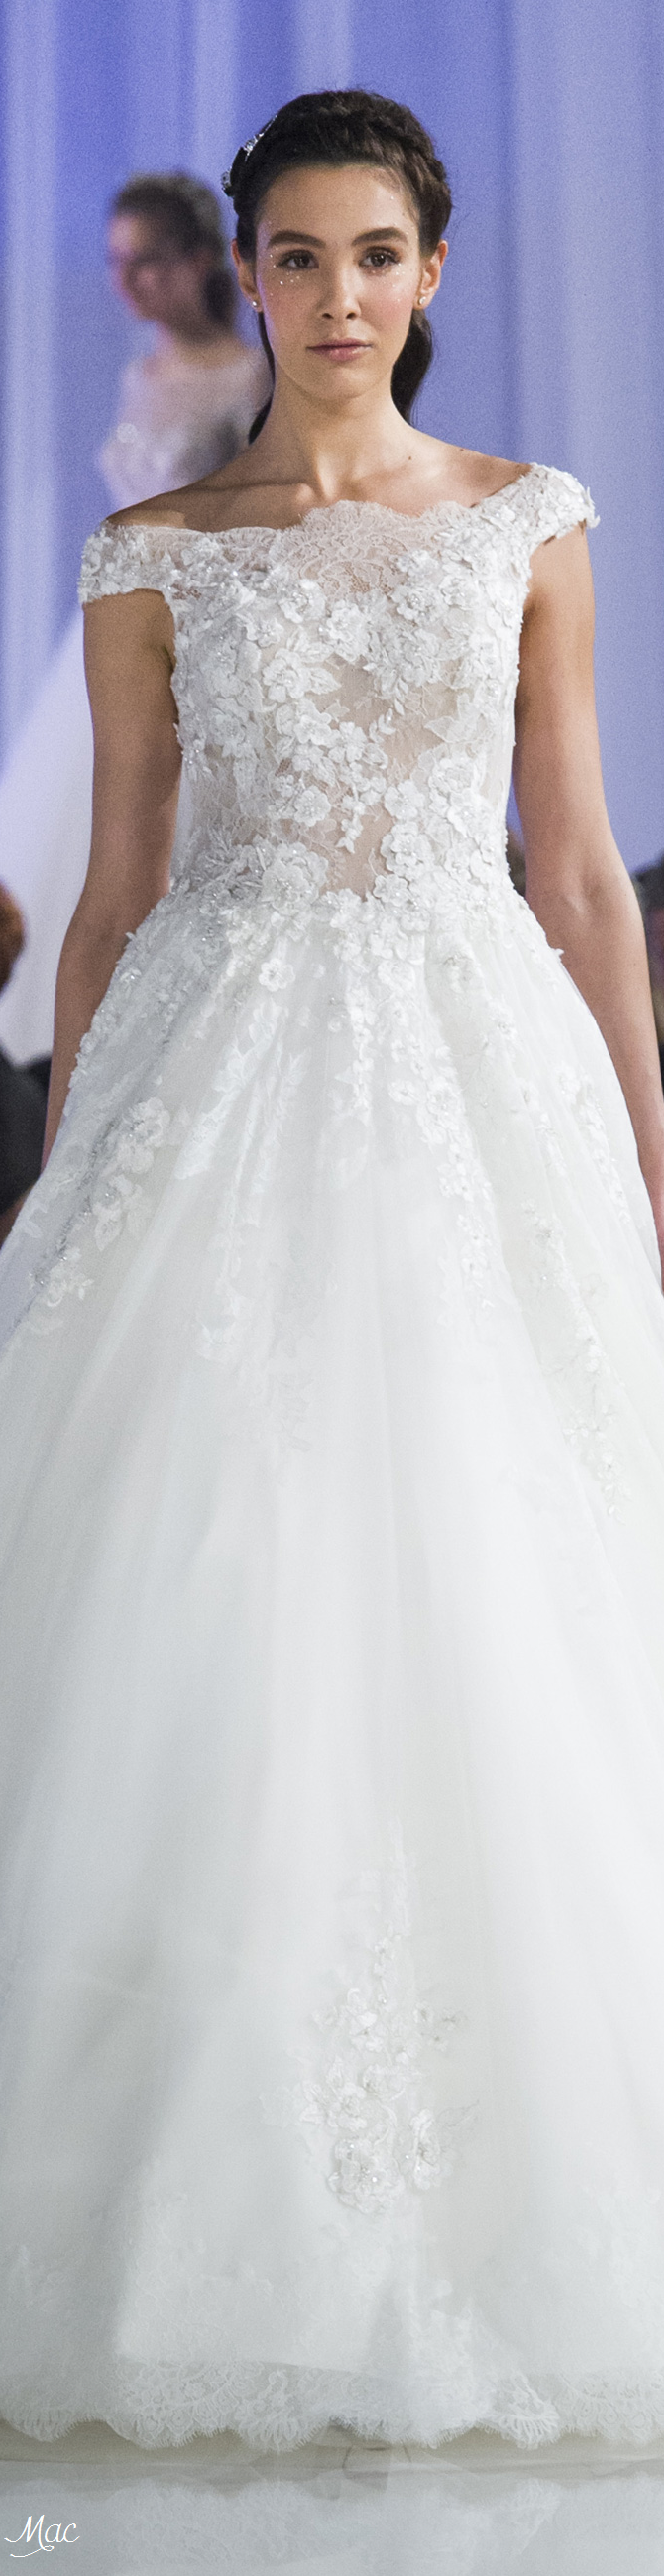 Spring bridal nicole bridal boutique pinterest spring and